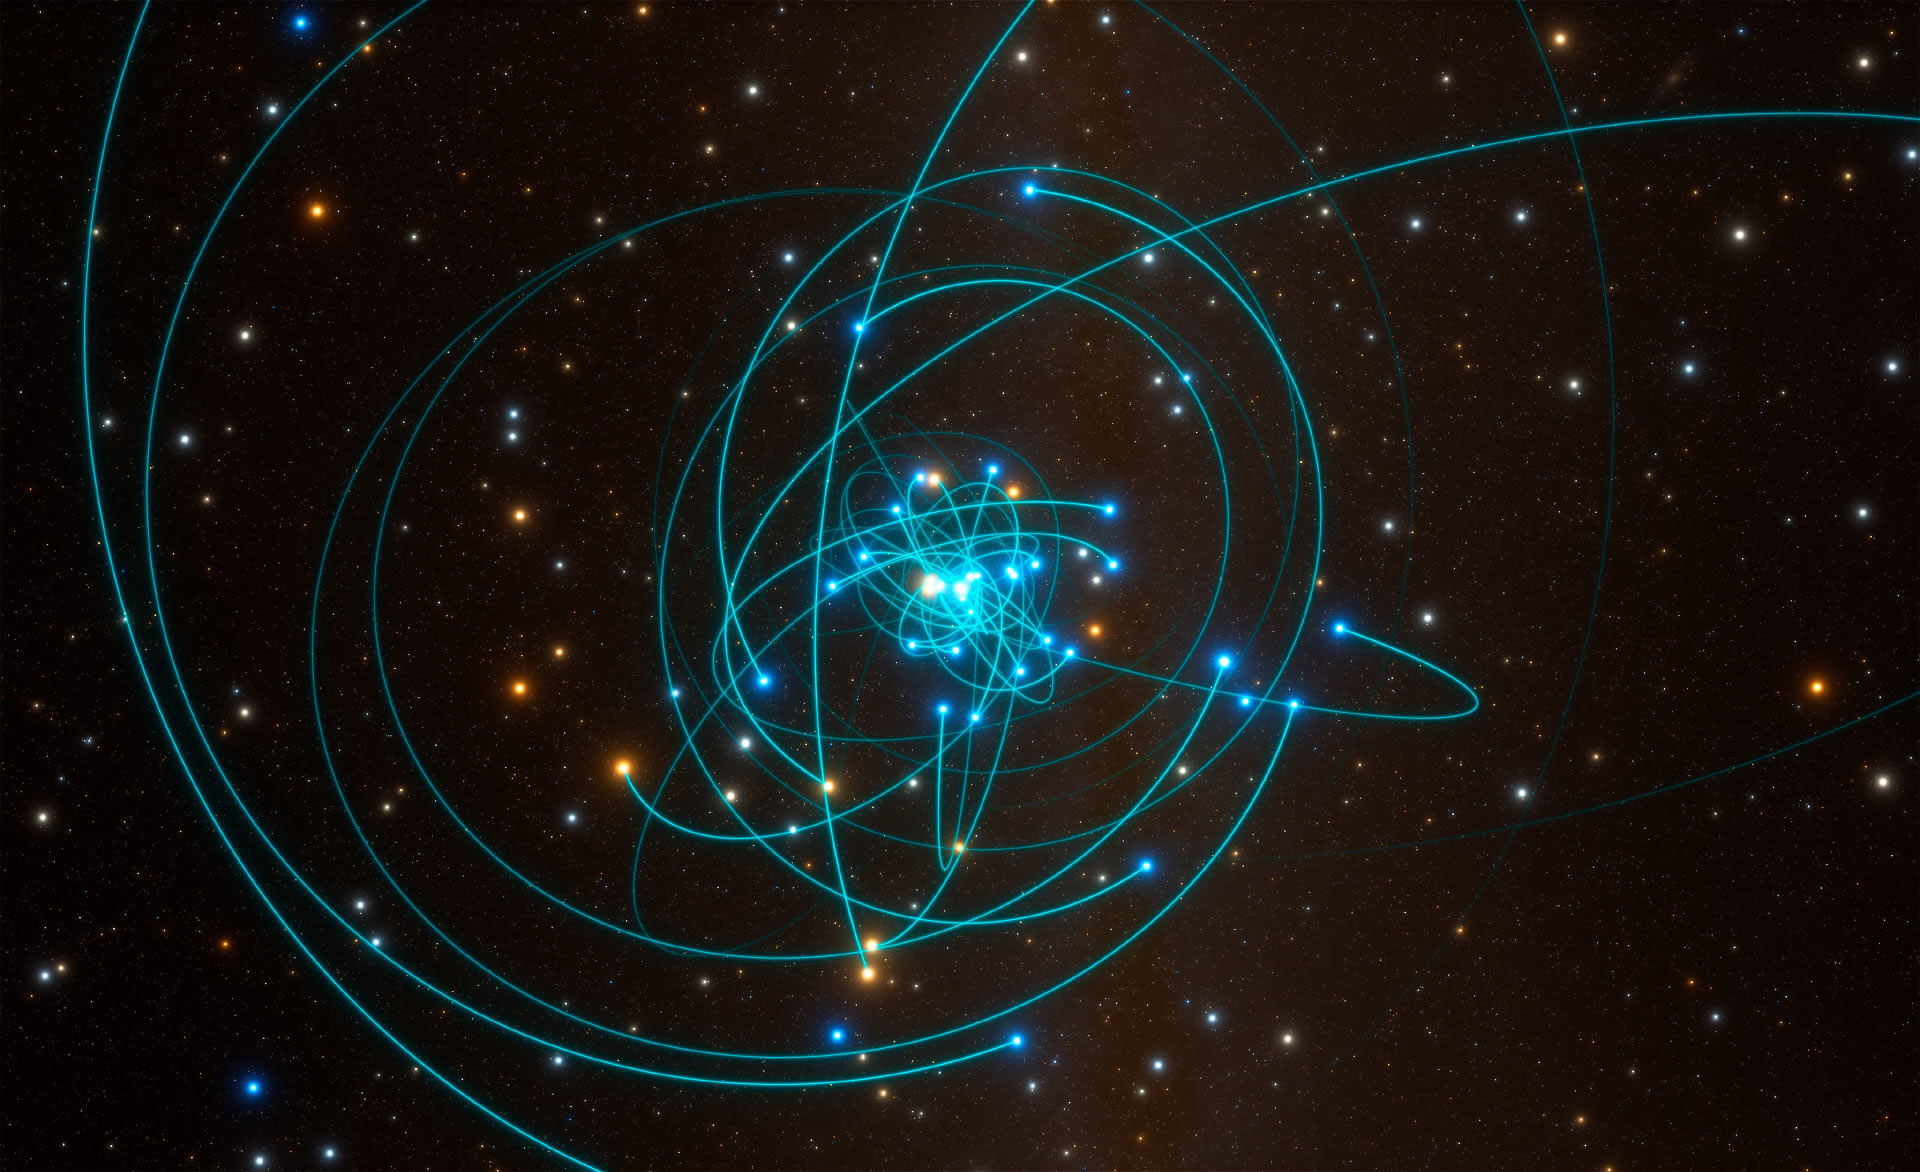 This simulation shows the orbits of stars very close to Sagittarius A* a supermassive black hole at the heart of the Milky Way. One of these stars S2 orbits every 16 years and is passing very close to the black hole in May 2018. Image credit ESO  L